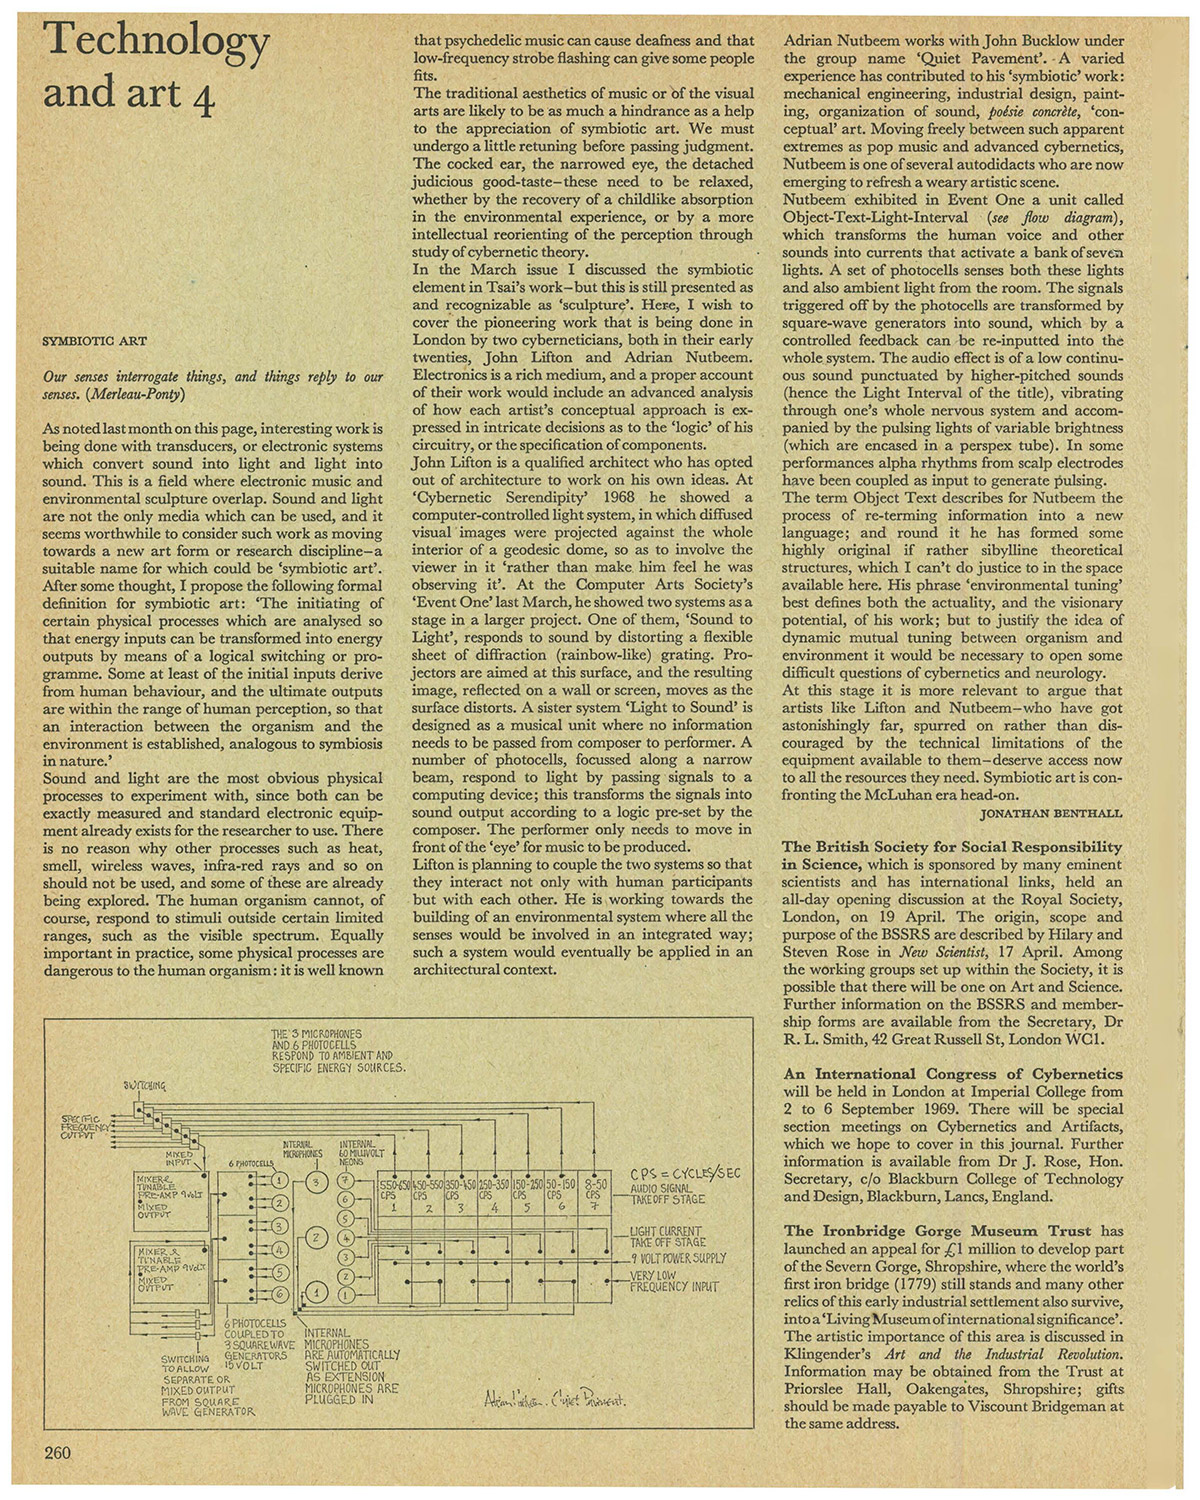 Technology and art 4: SYMBIOTIC ART. Studio International, Vol 177, No 912, June 1969, p. 260